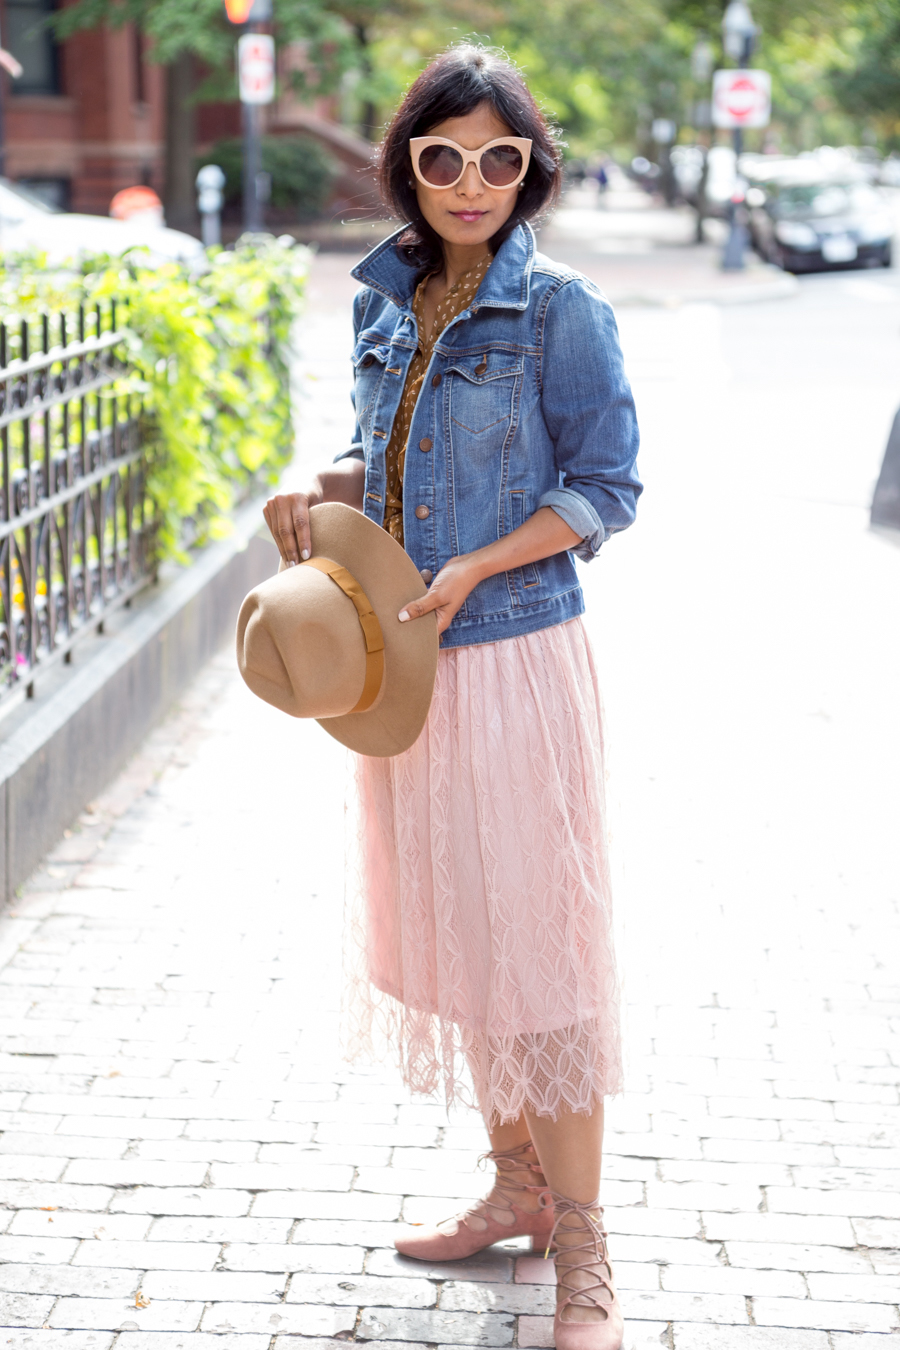 pre-fall style, fall style, lace skirt, pink lace, lace-up shoes, felted hat, brixton, ann taylor, loft, forever 21, petite fashion, feminine outfit, fall wardrobe updates, petite style, easy style, style tips, girly, how to update your wardrobe for fall